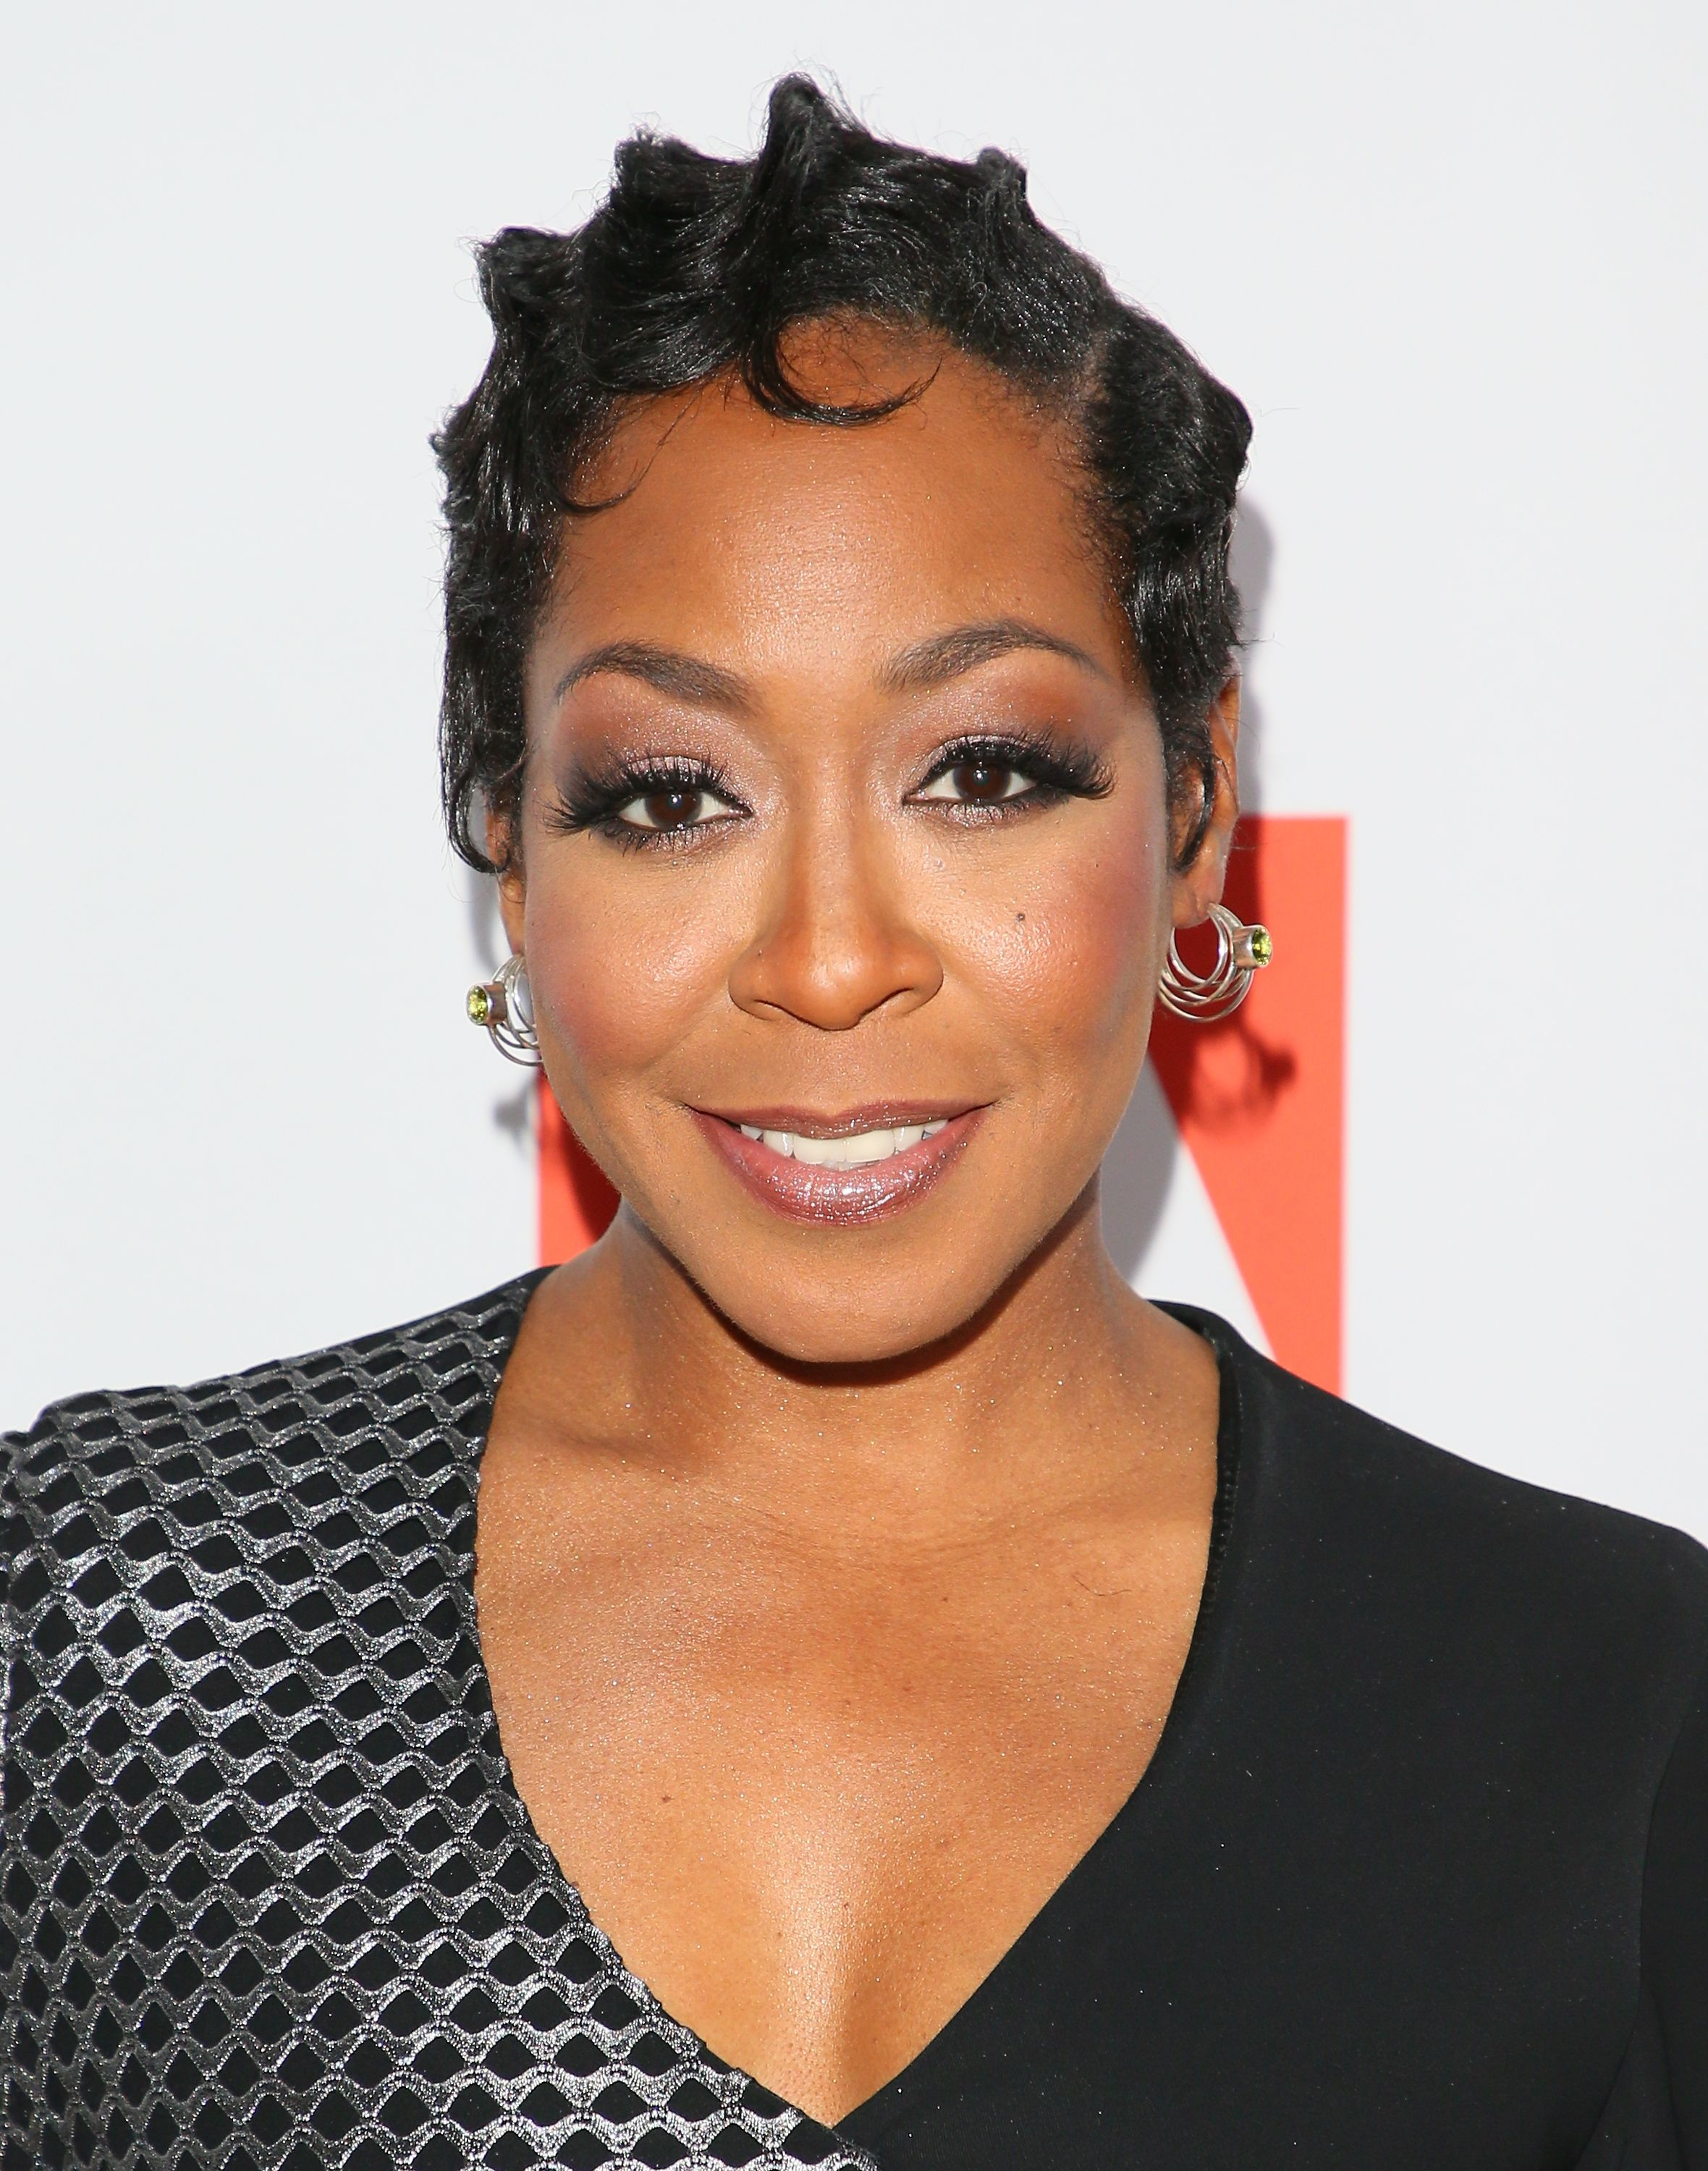 Tichina Arnold attends the 68th Annual ACE Eddie Awards on January 27, 2018.   Photo: Getty Images